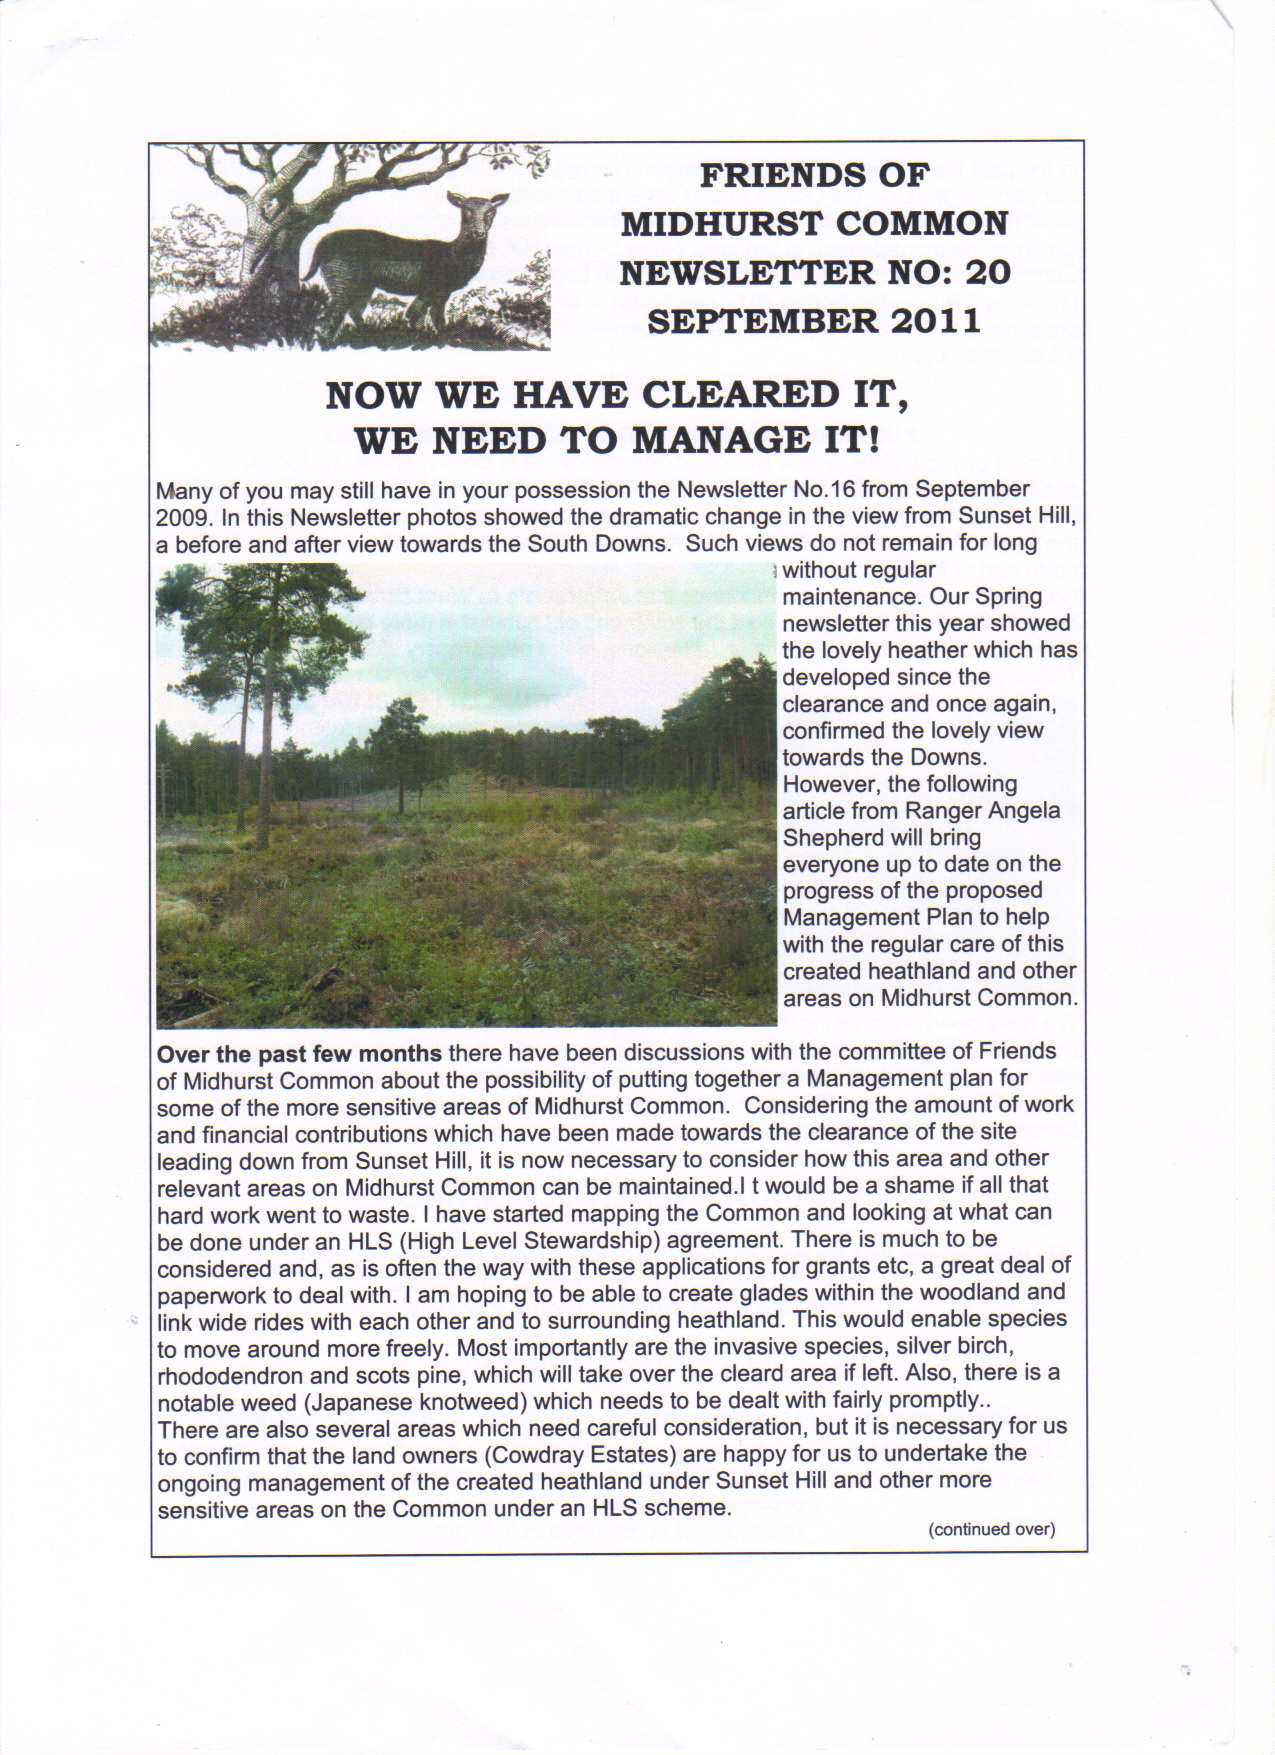 Newsletter no 20 part 1 of 2 September 2011